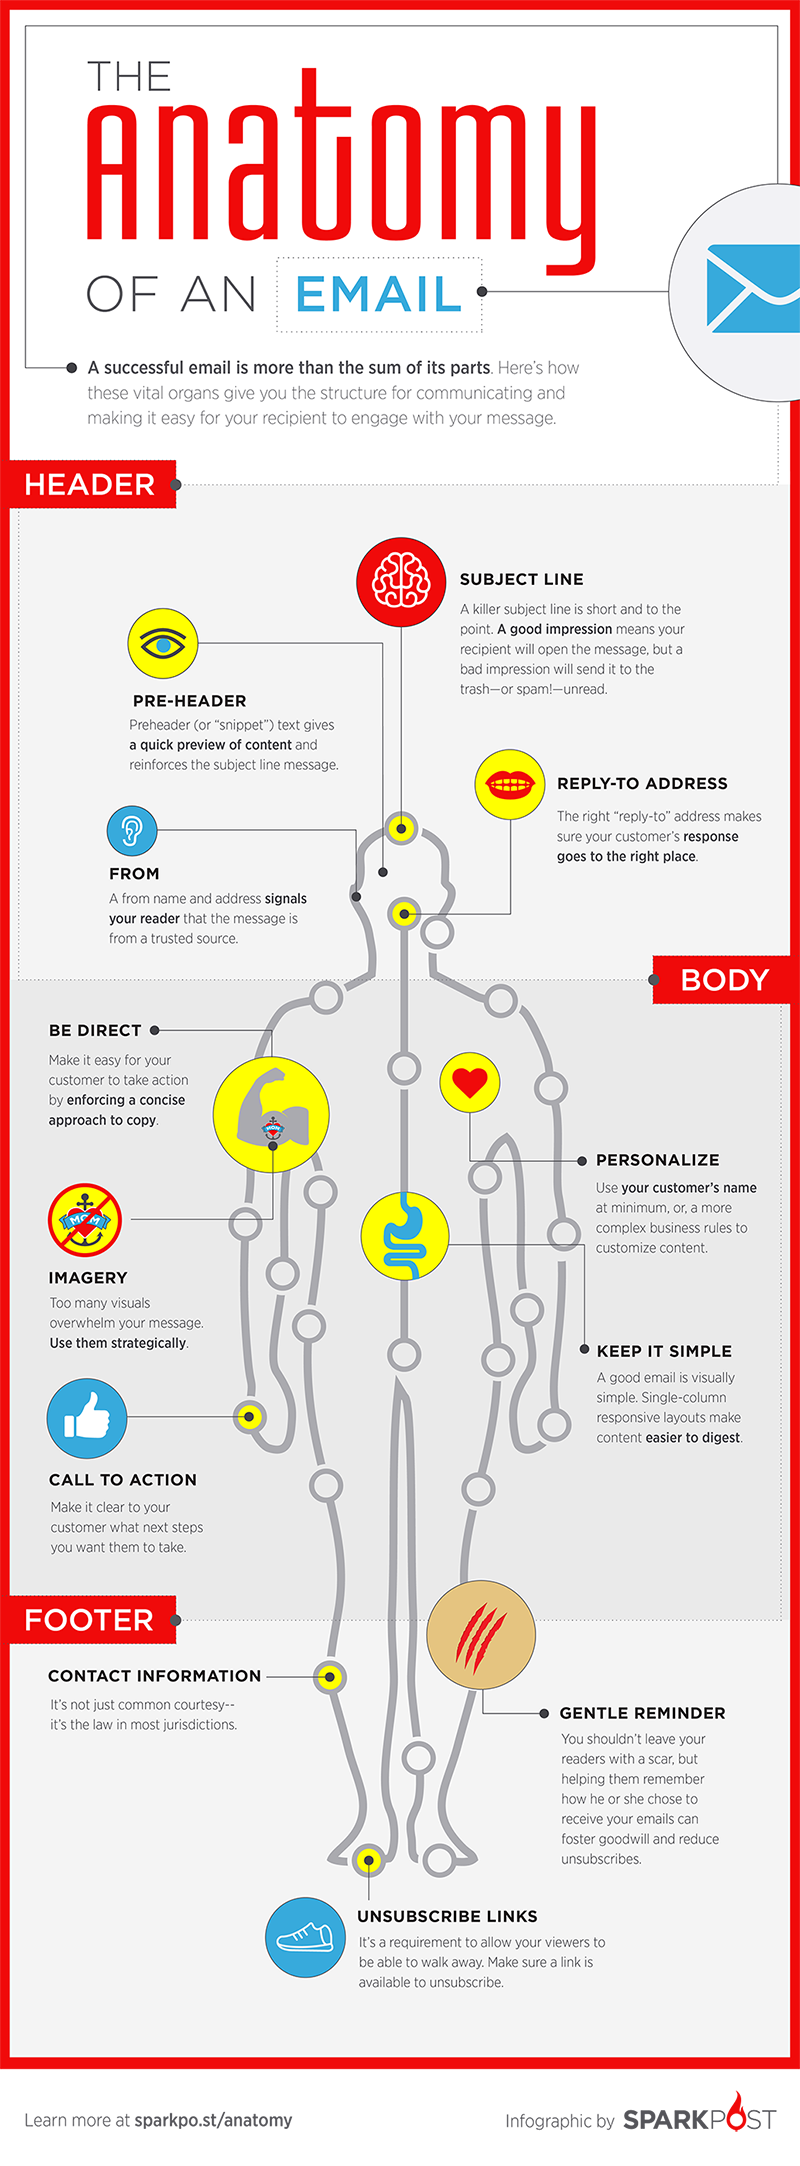 The Anatomy of a Successful Email [Infographic] - SparkPost